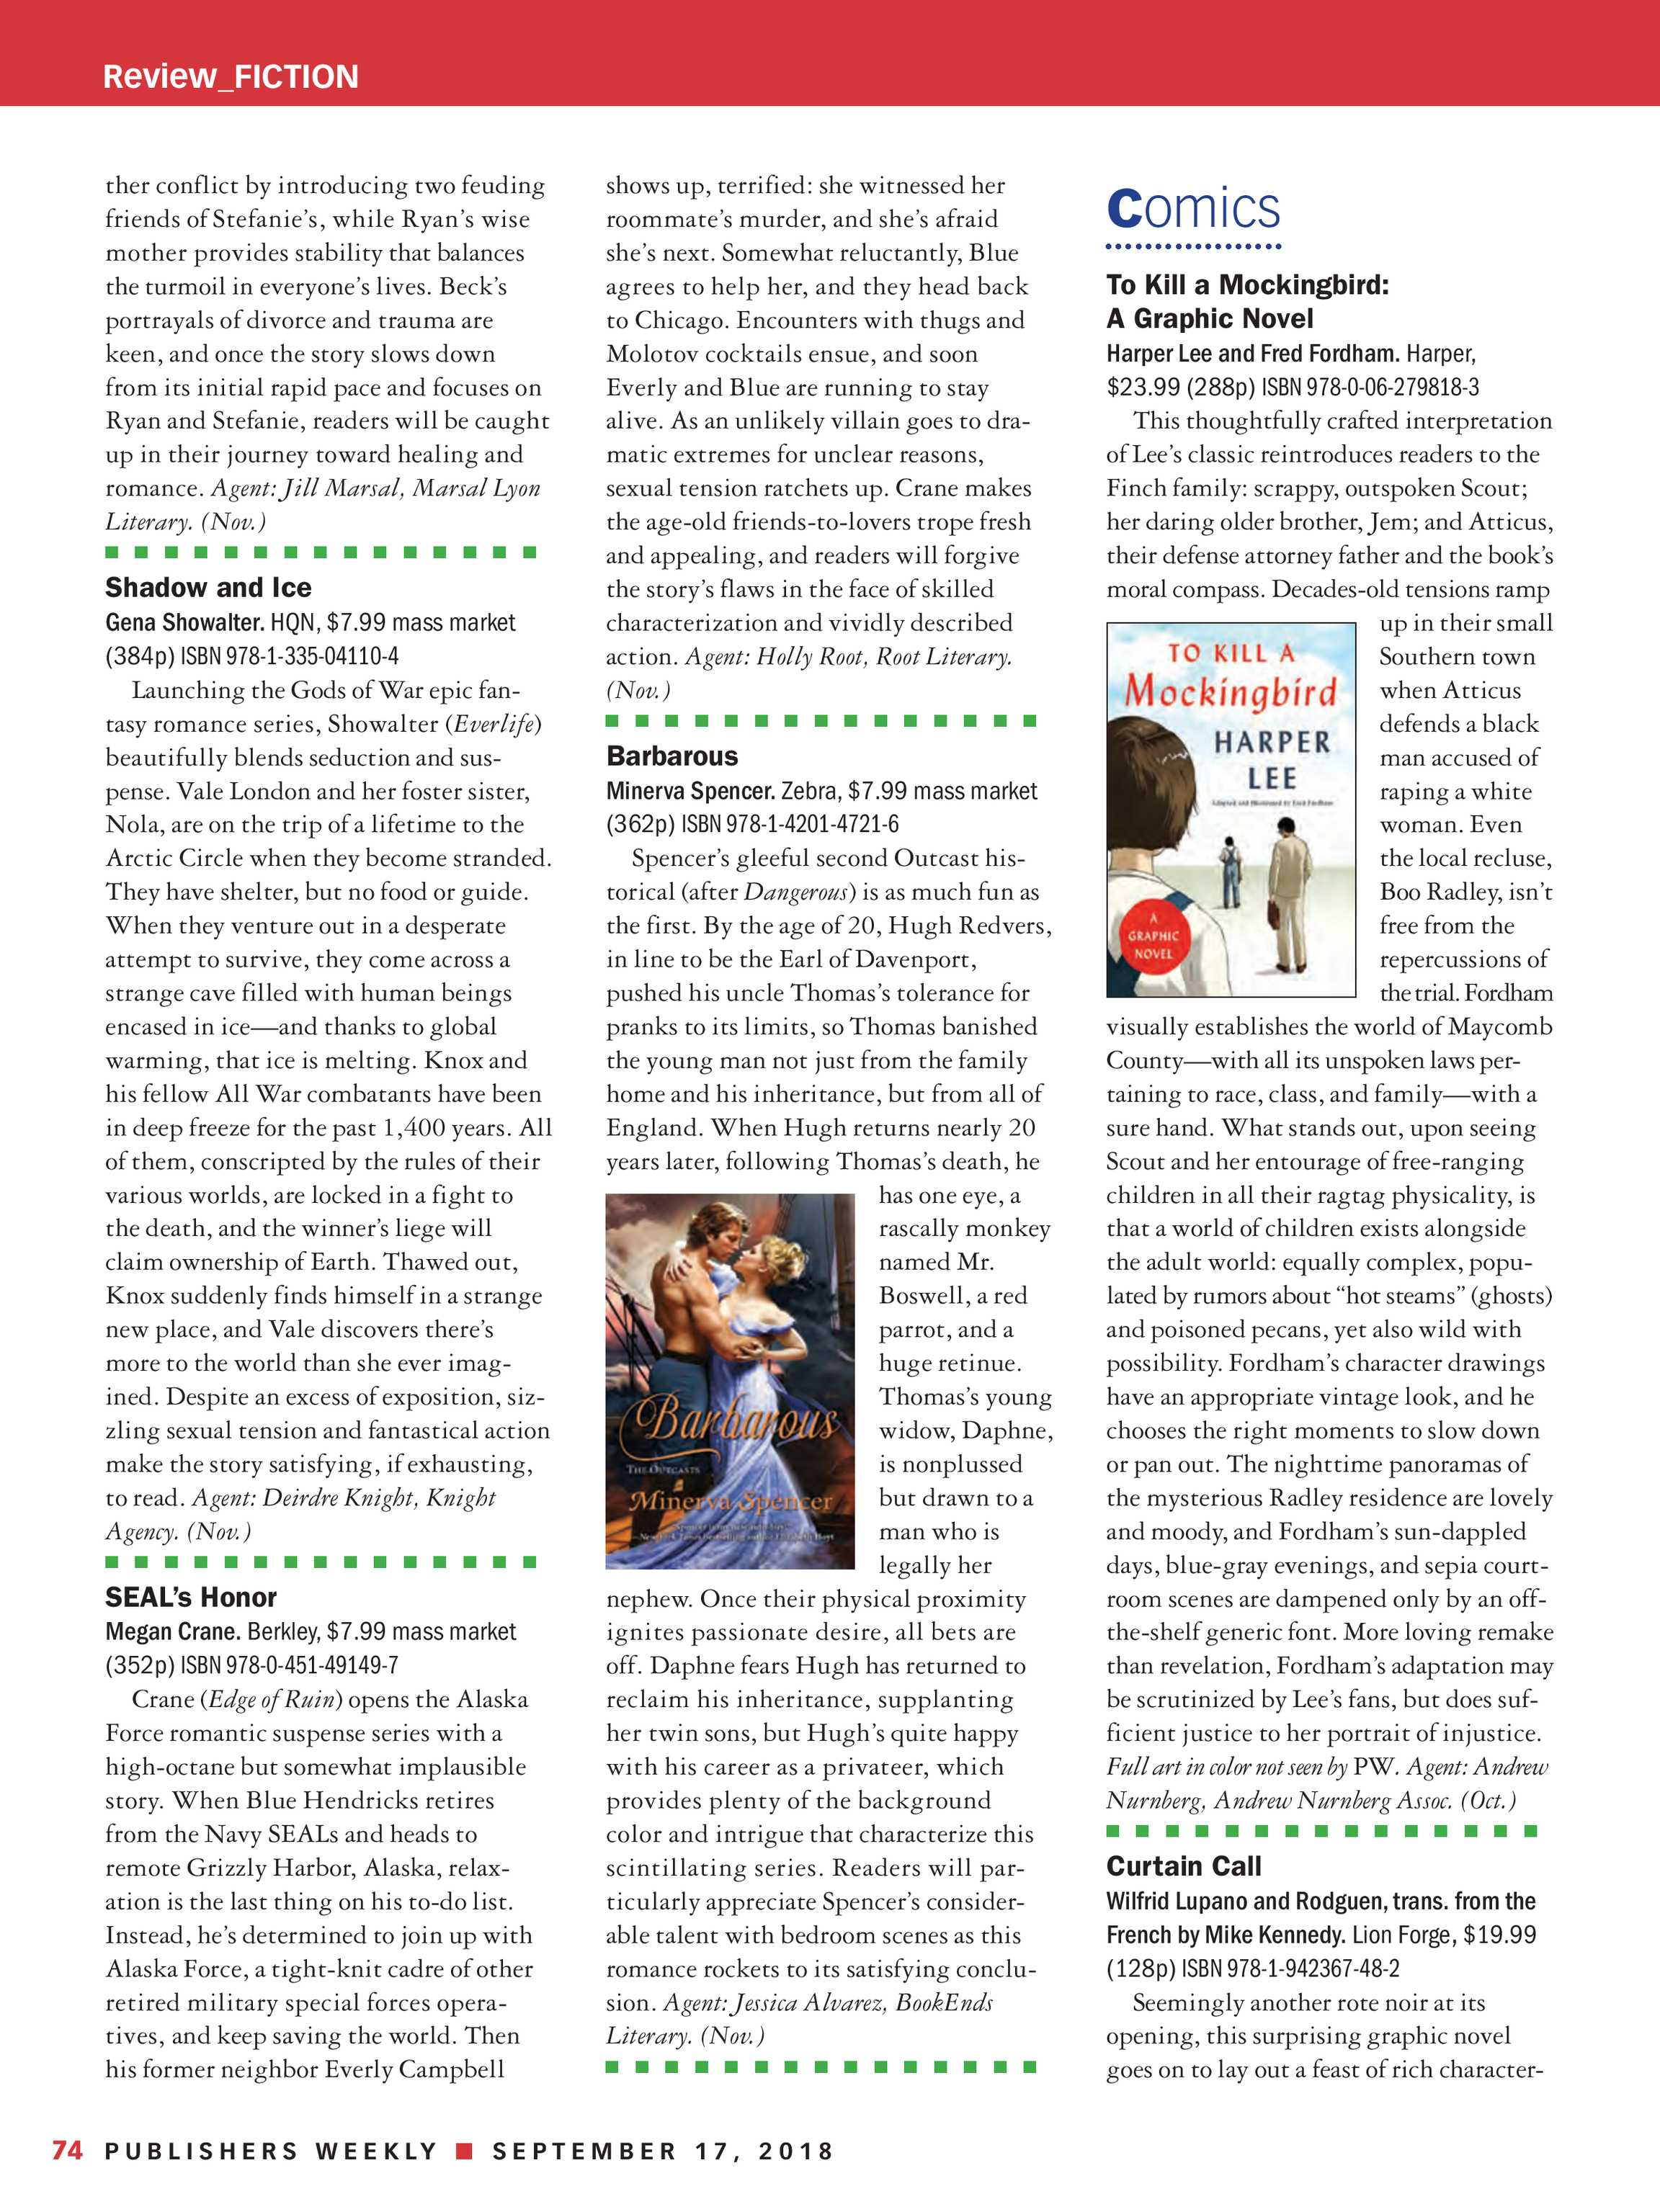 Publishers Weekly - September 17, 2018 - page 68